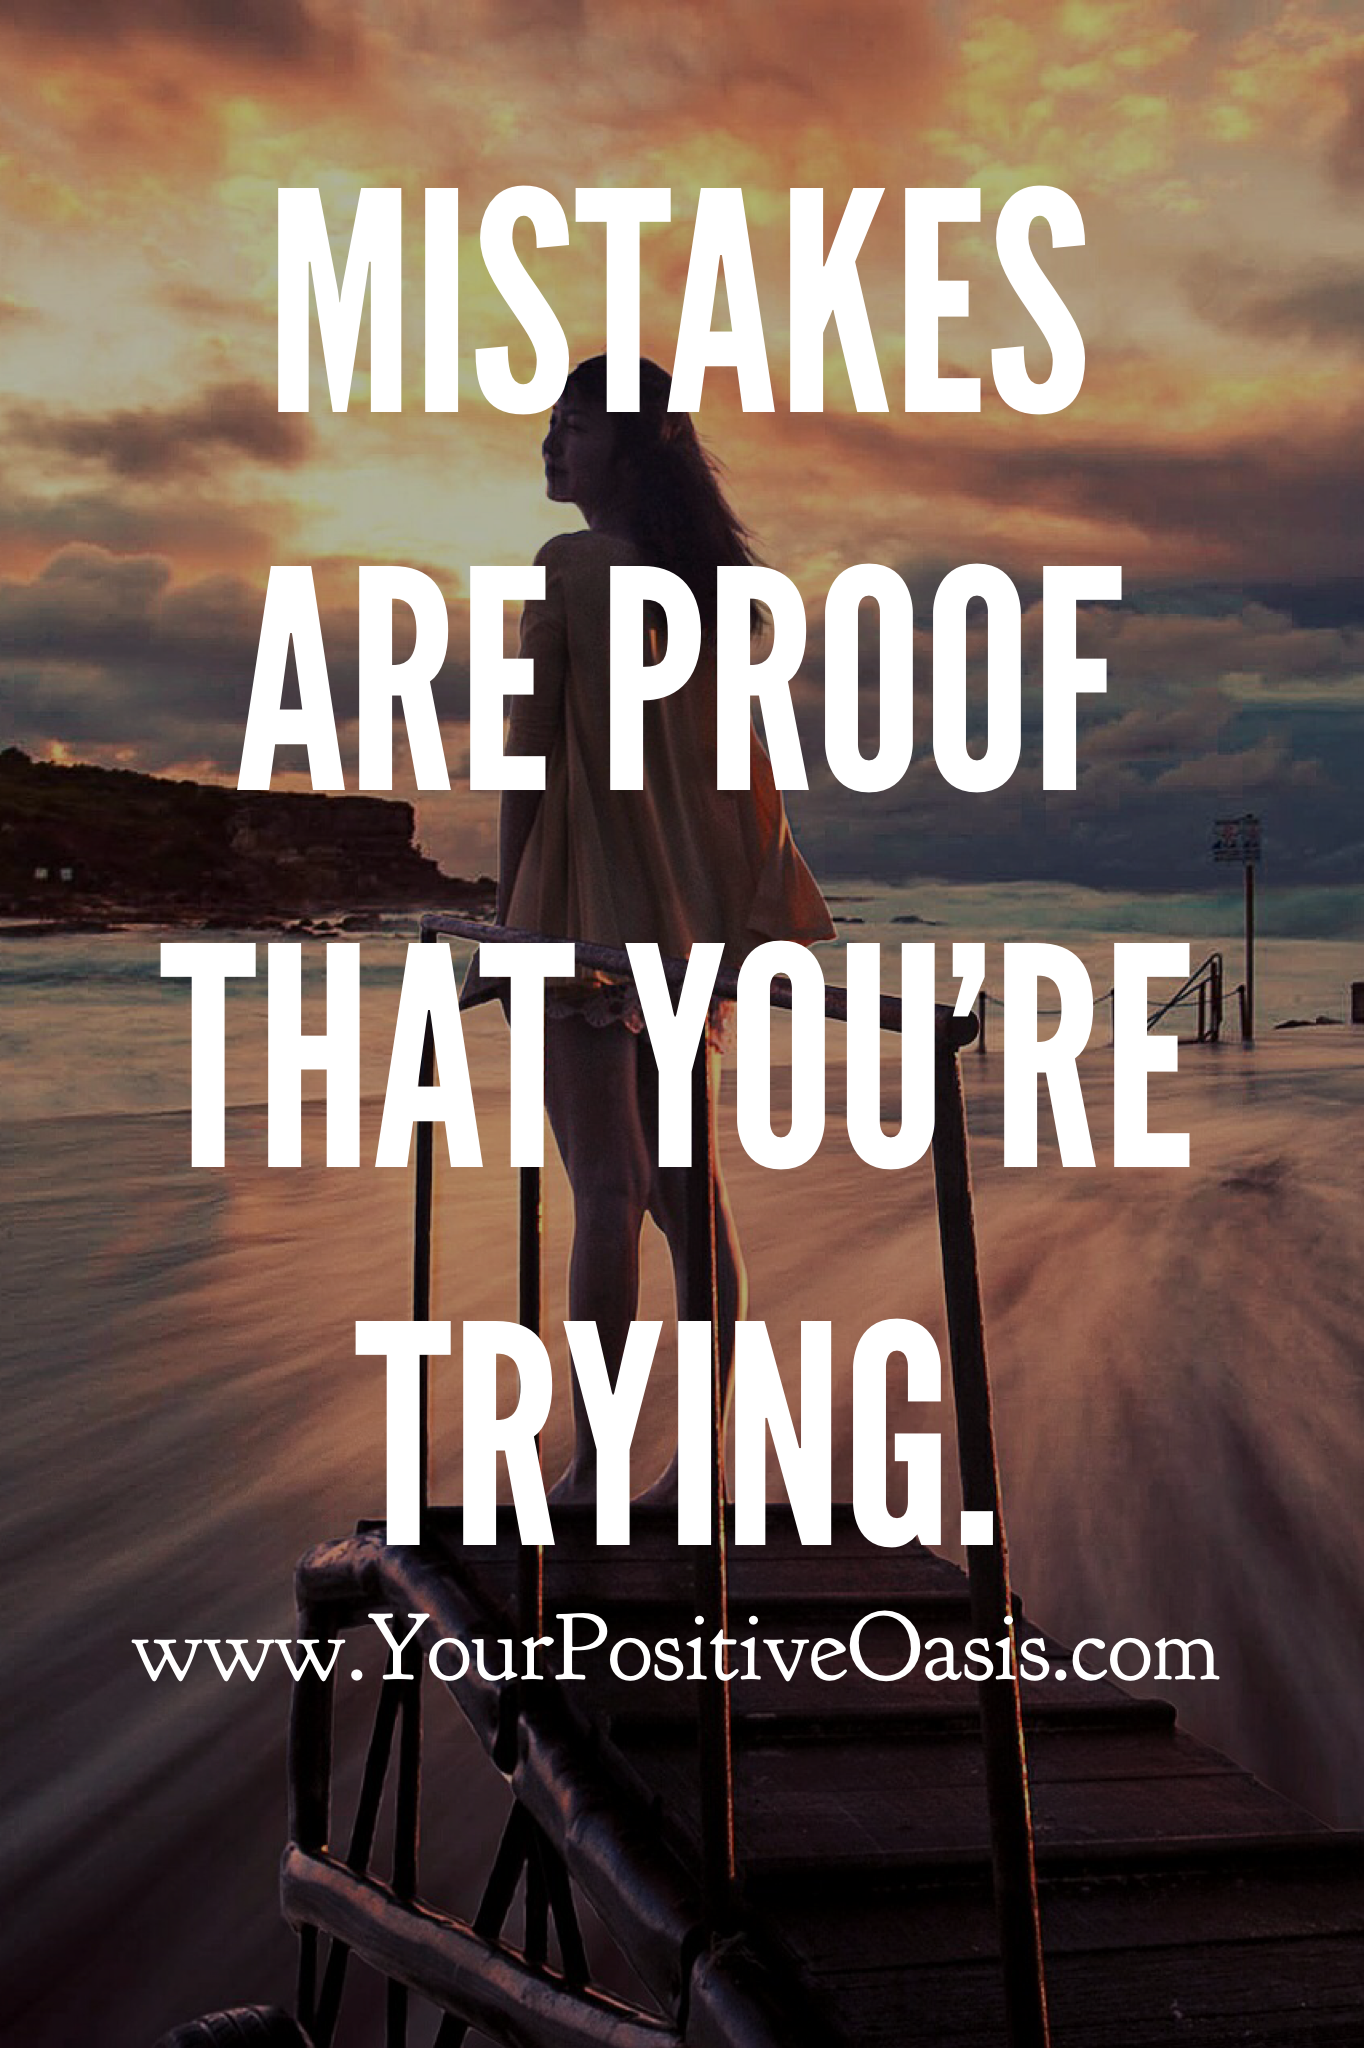 Quotes Archives Your Positive Oasis Motivational Quotes For Life Positive Quotes Quotes Deep